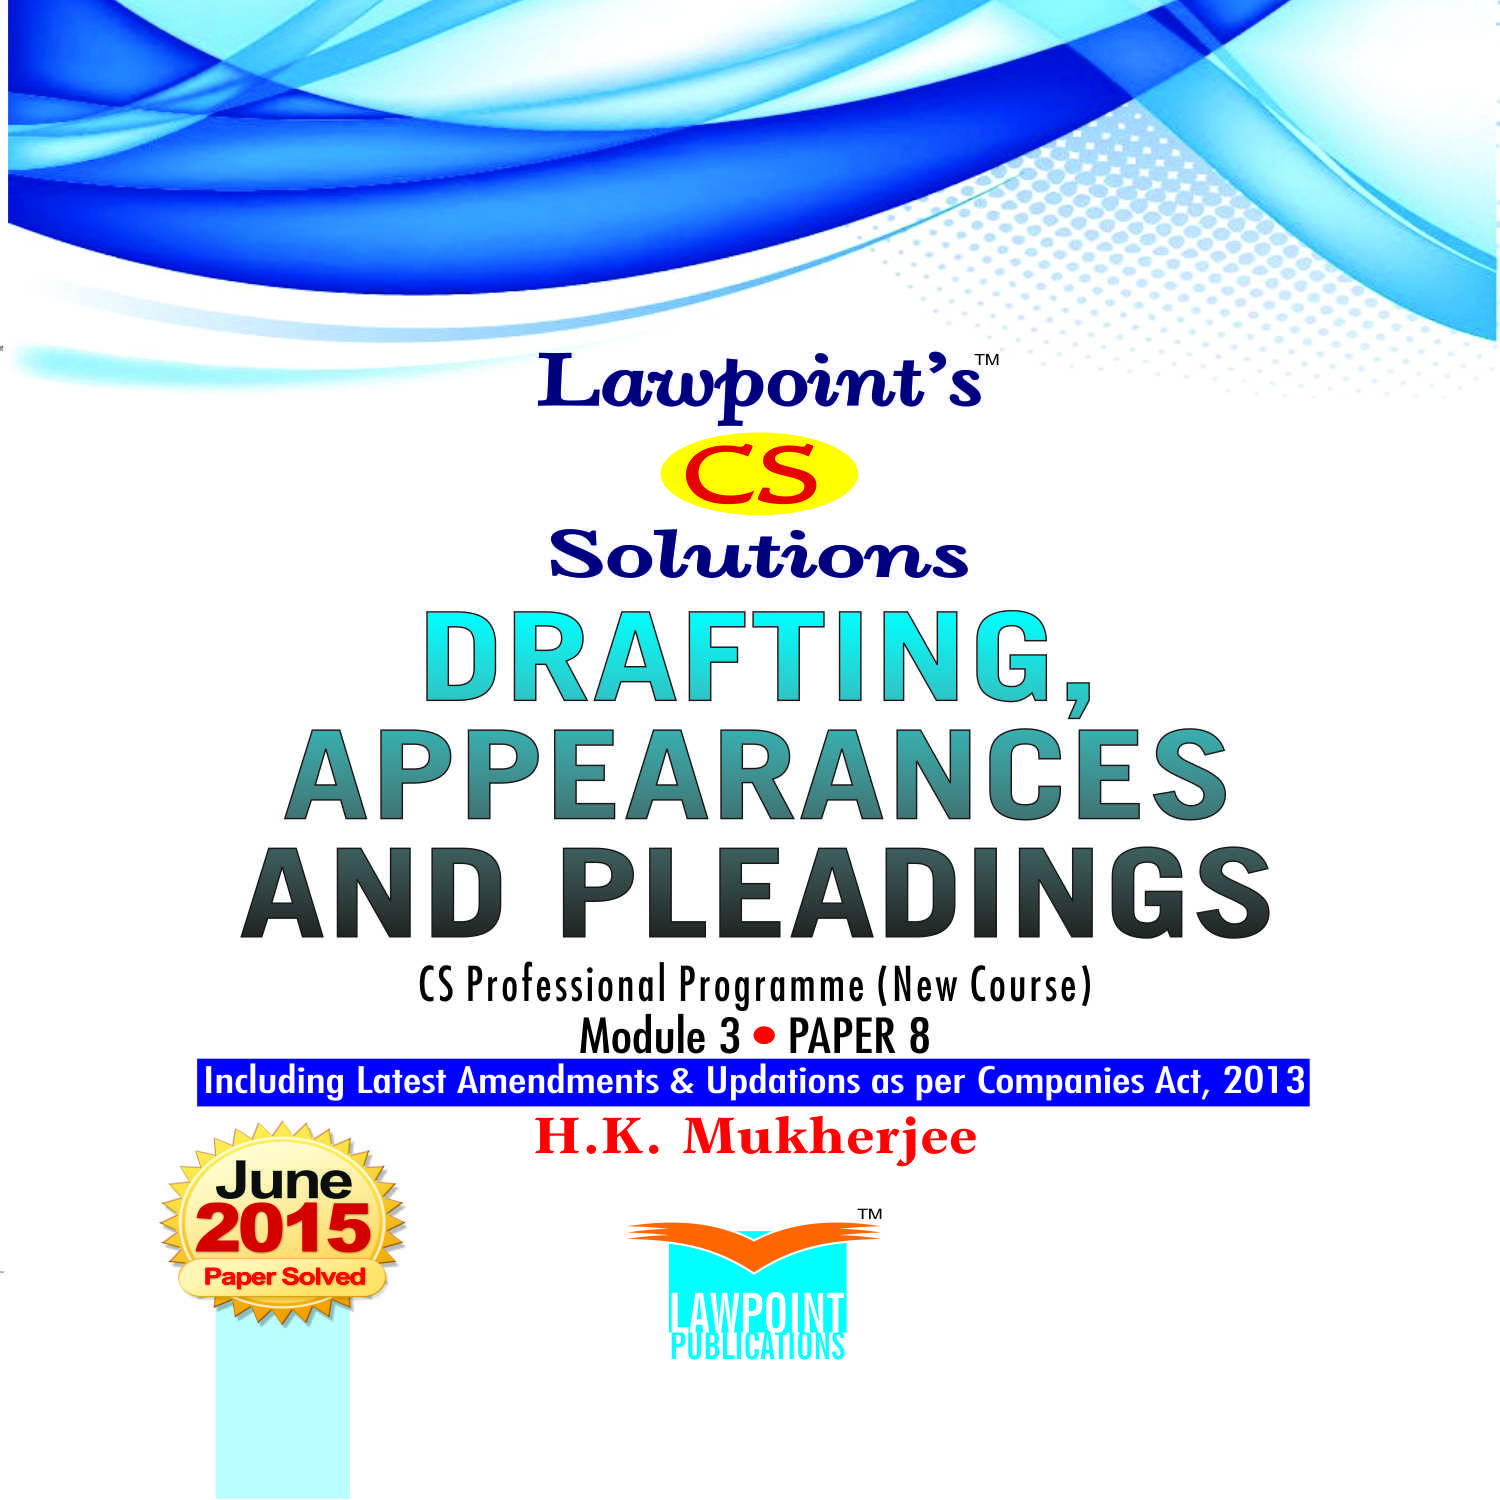 Lawpoint's CS Solutions Drafting, Appearances and Pleadings